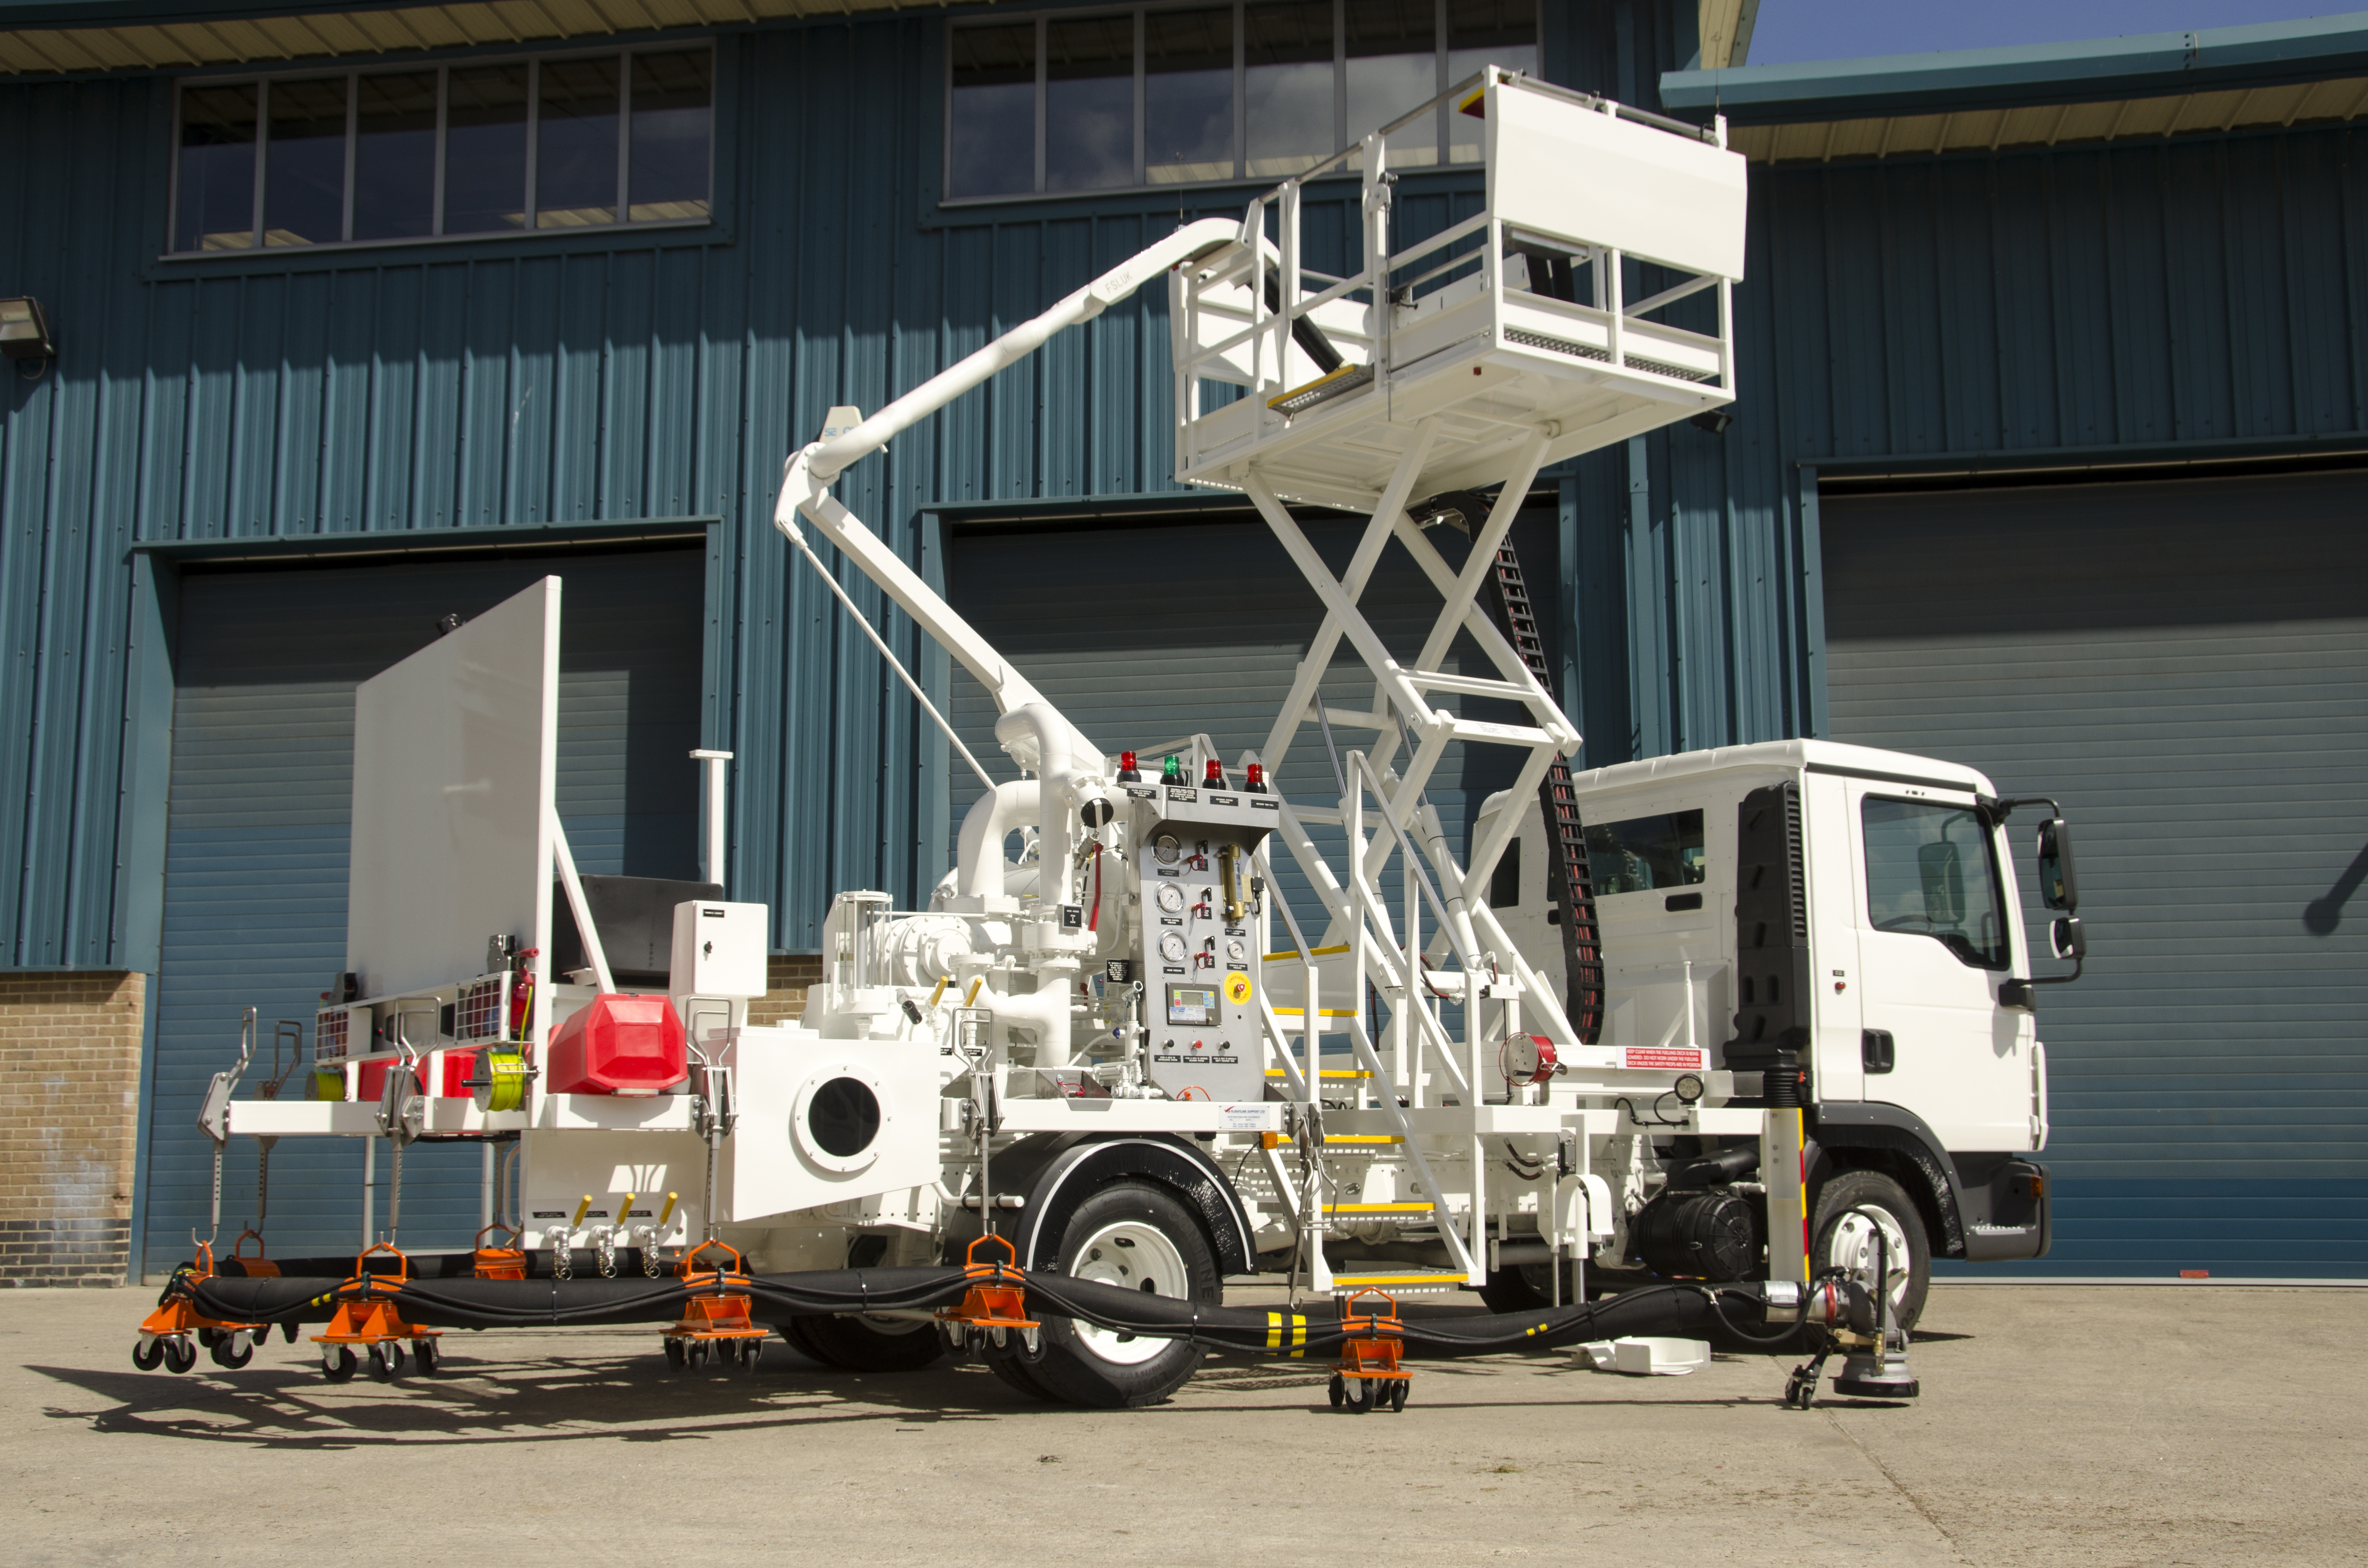 Flightline Support Ltd Aircraft Refuelling Vehicles And